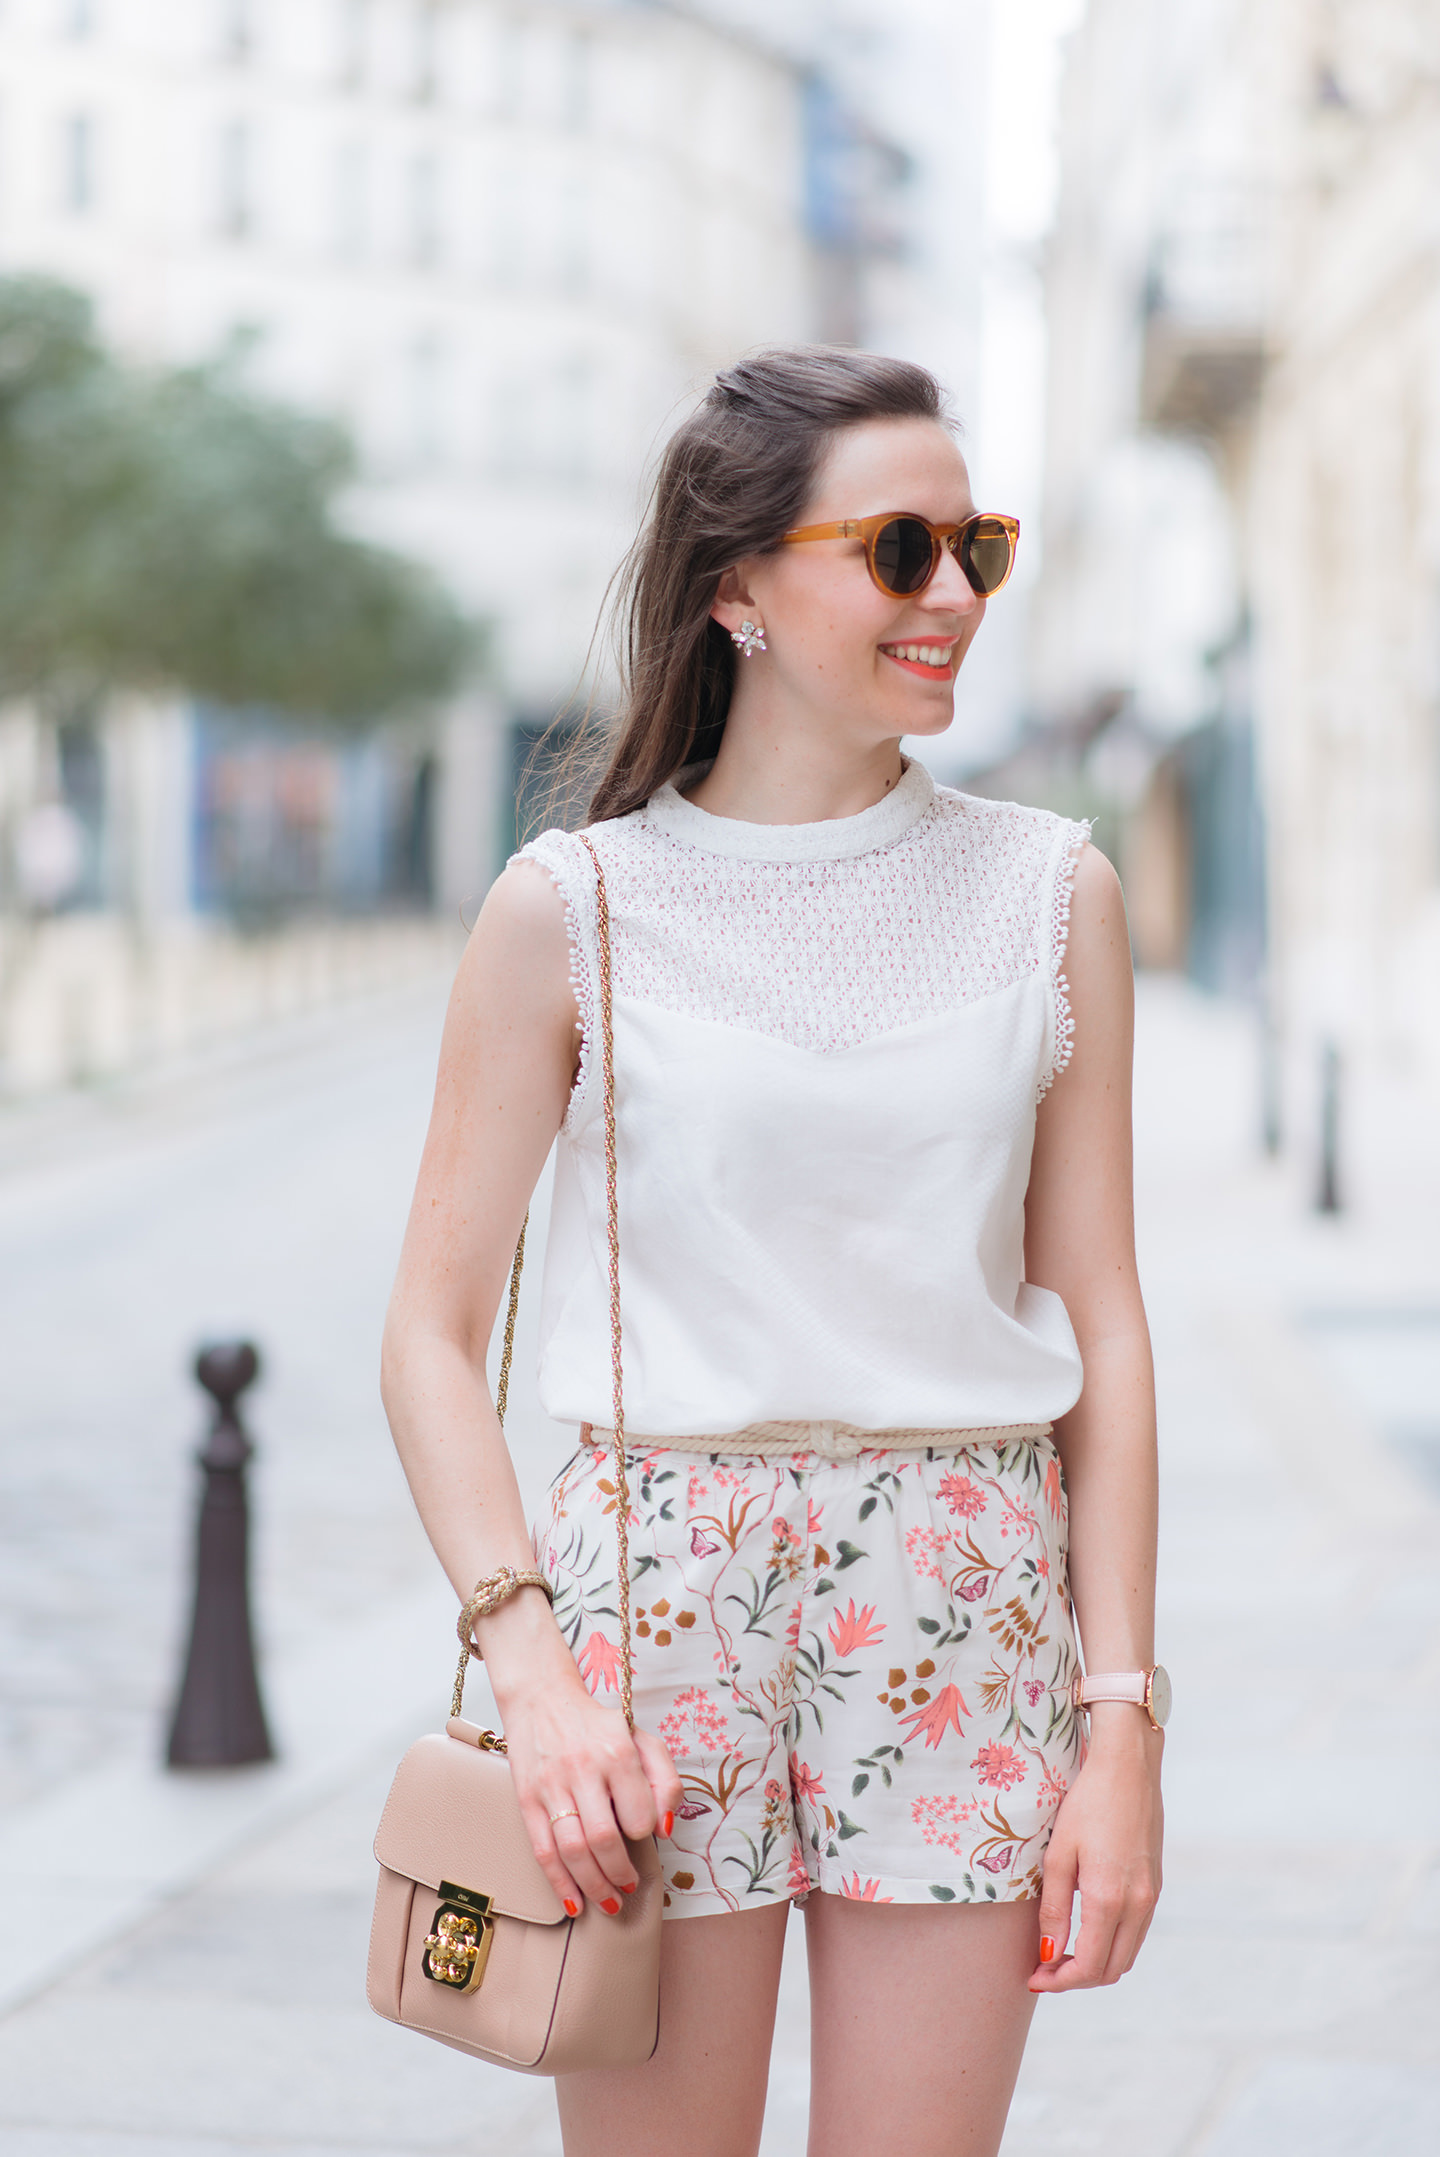 Blog-Mode-And-the-City-Looks-Pastel-et-Fleuri-7